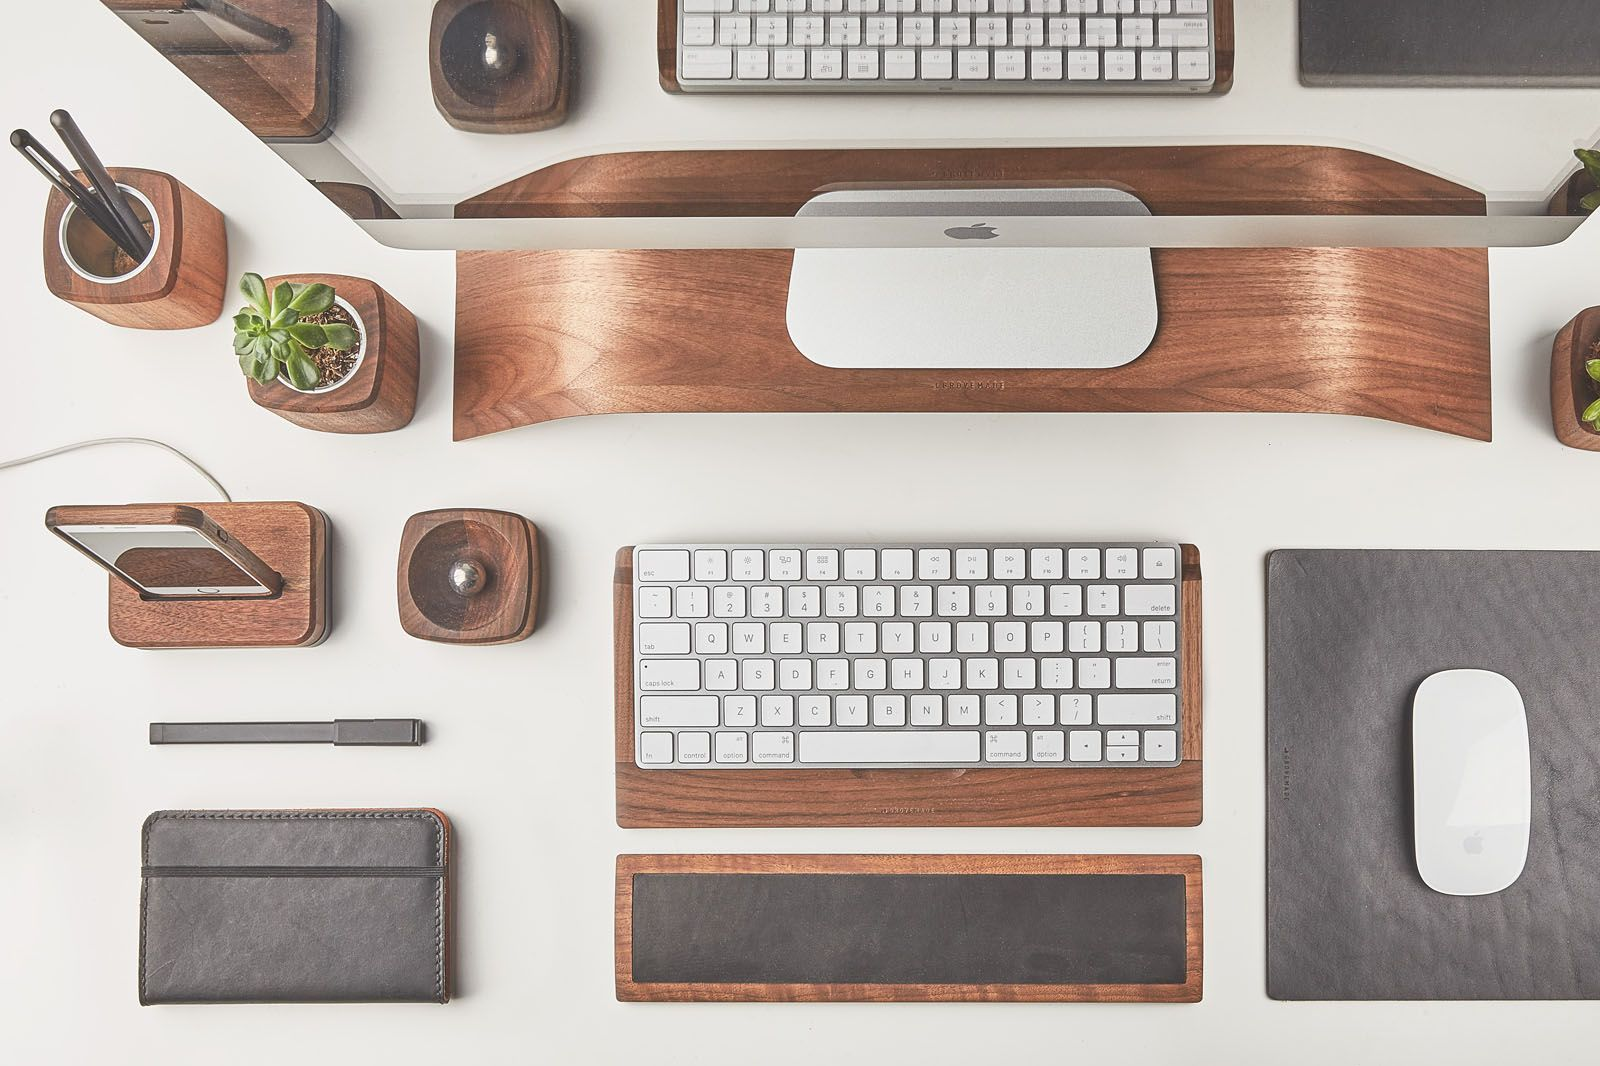 Top view of the walnut wood Grovemade Desk Collection with walnut keyboard tray, monitor stand, pen cups, desk lamps, planter, leather mouse pad, leather wrist pad.